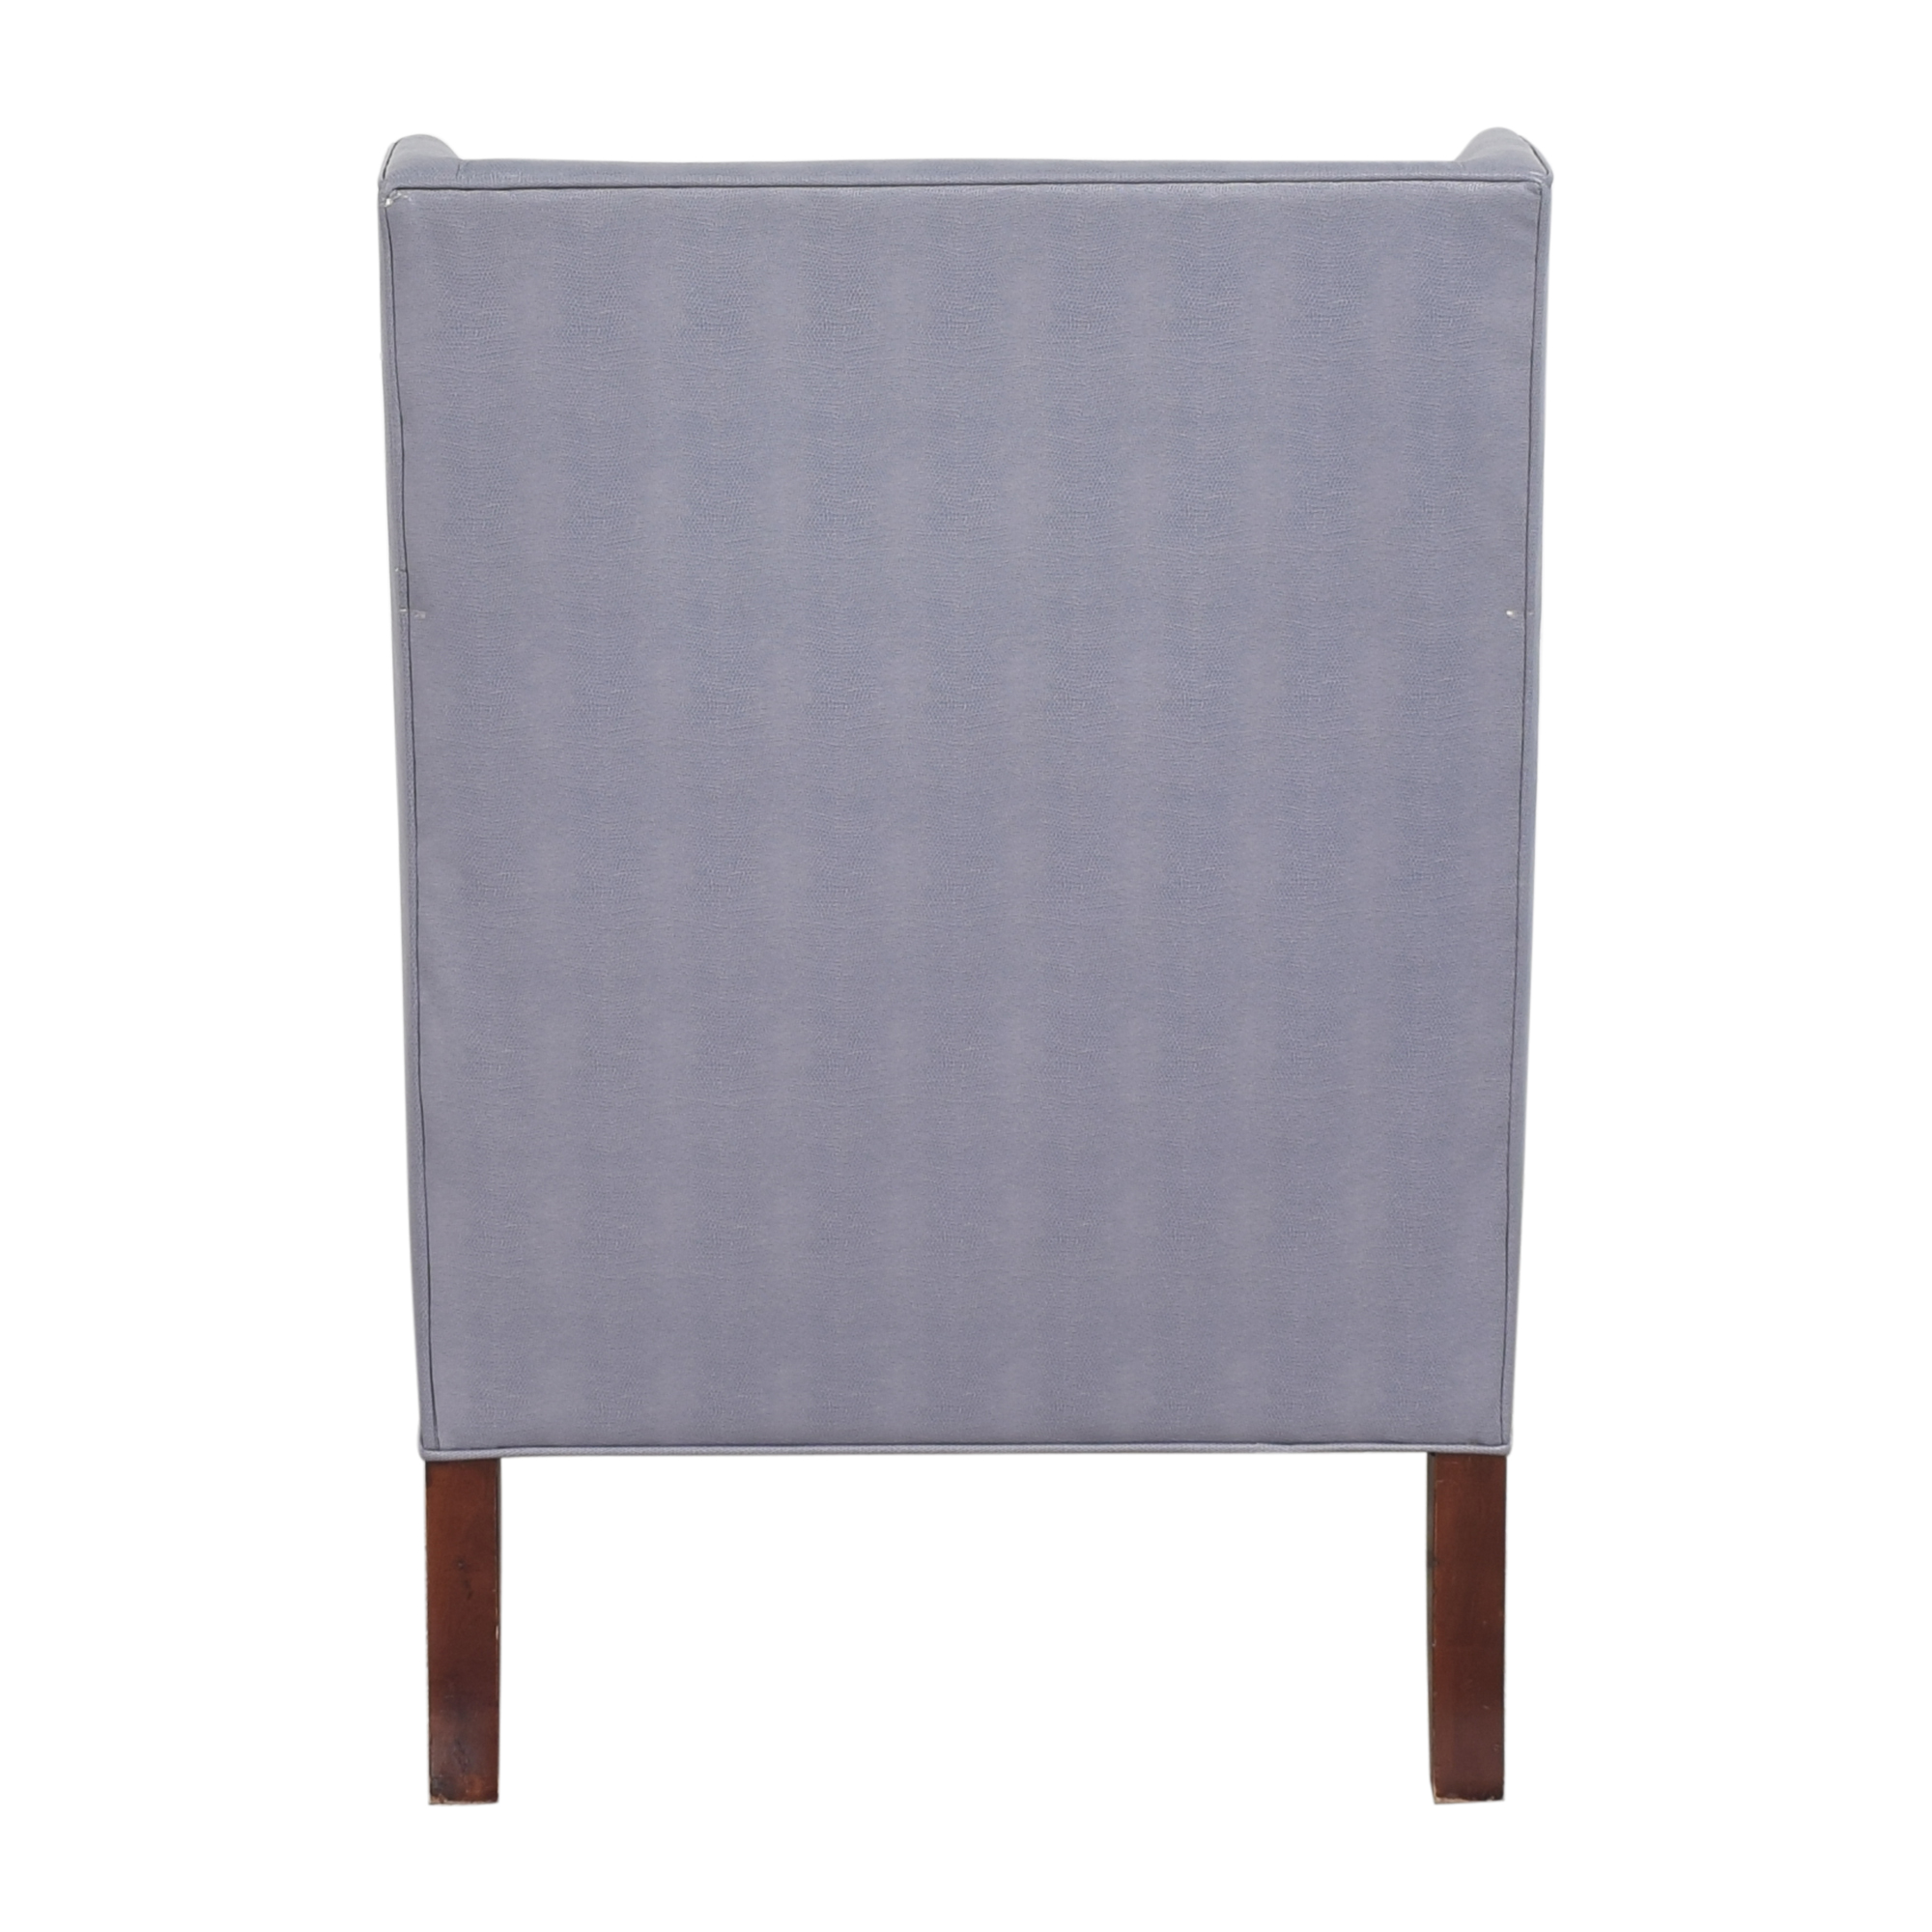 Baker Furniture Baker Furniture Milling Road Accent Chair coupon